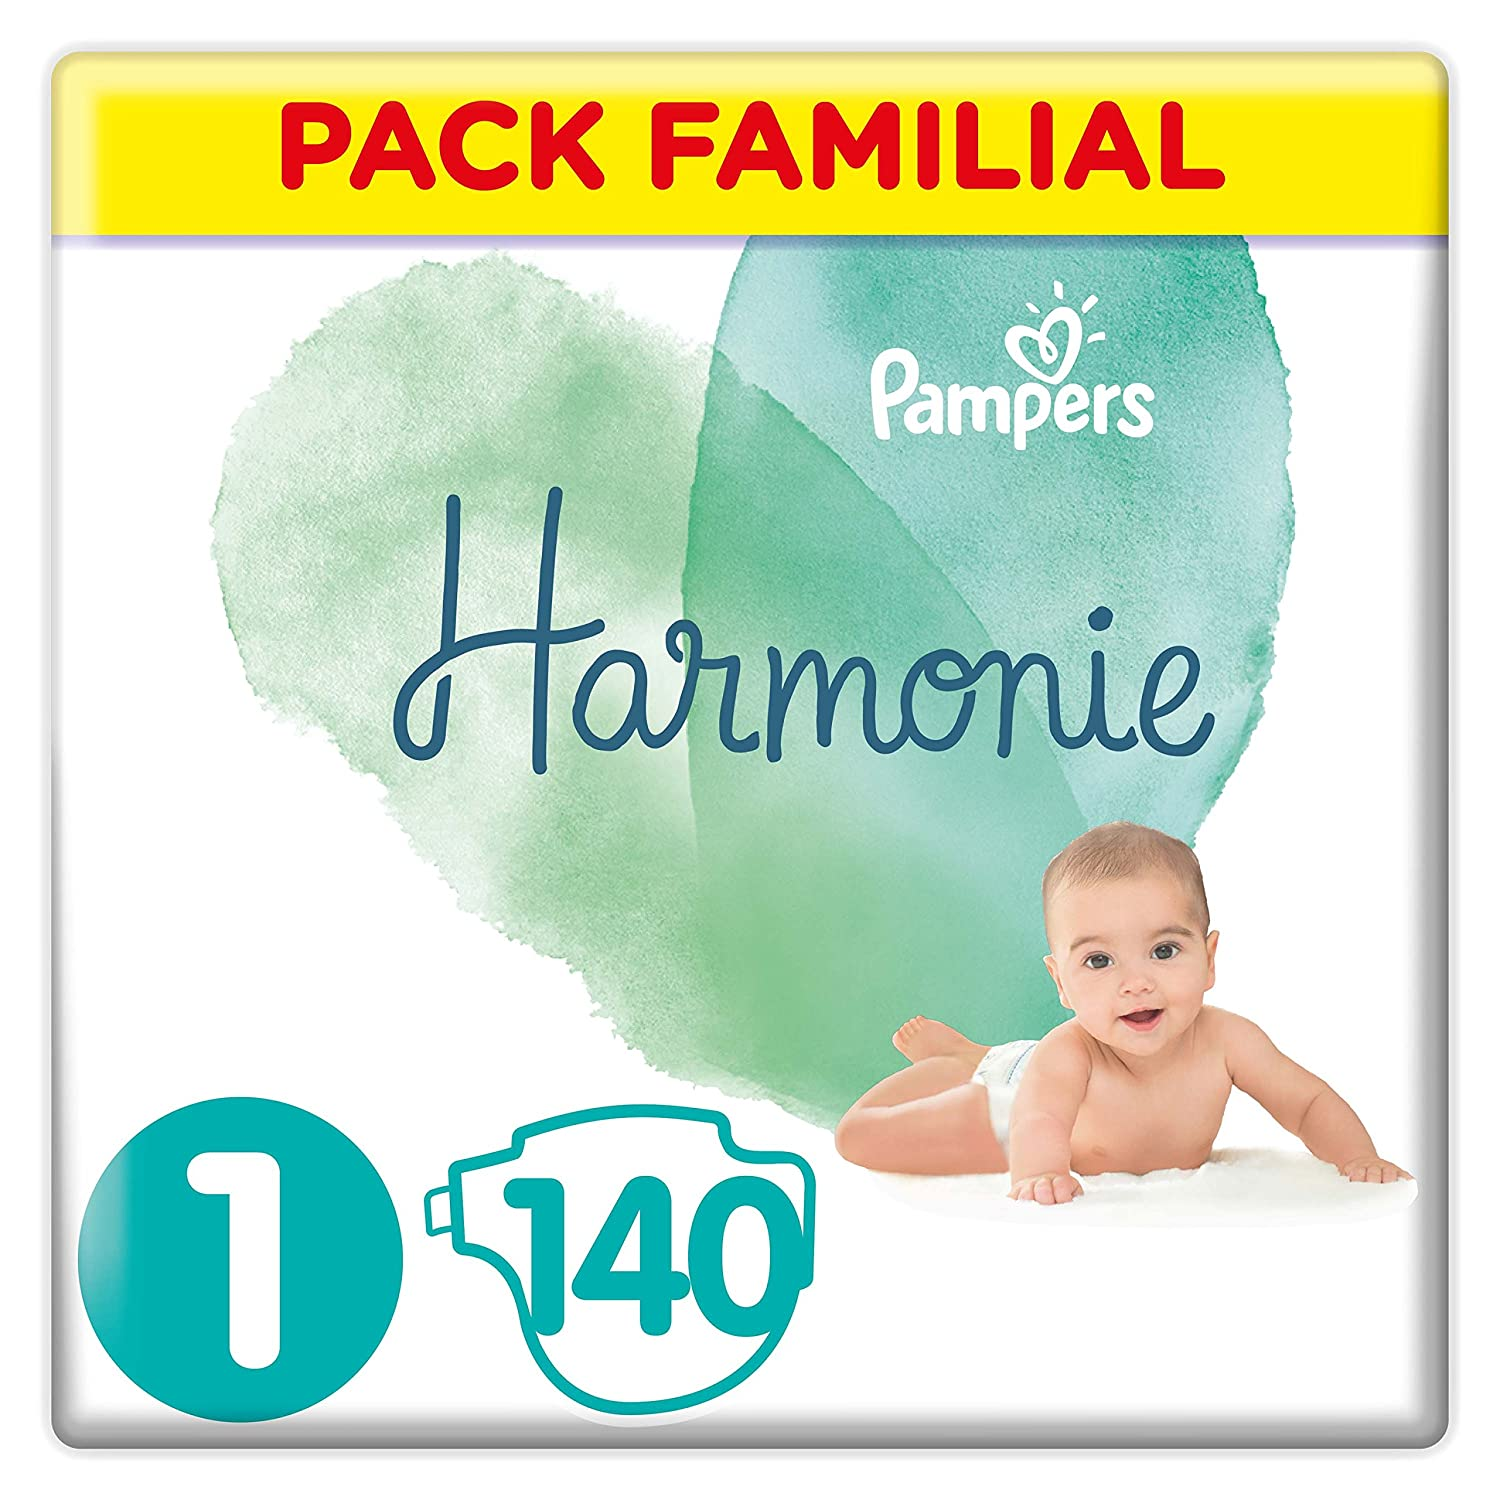 Harmonie Couches Taille 3 Pack Familial/ Hypoallerg/énique 124 couches Pampers 6-10 kg